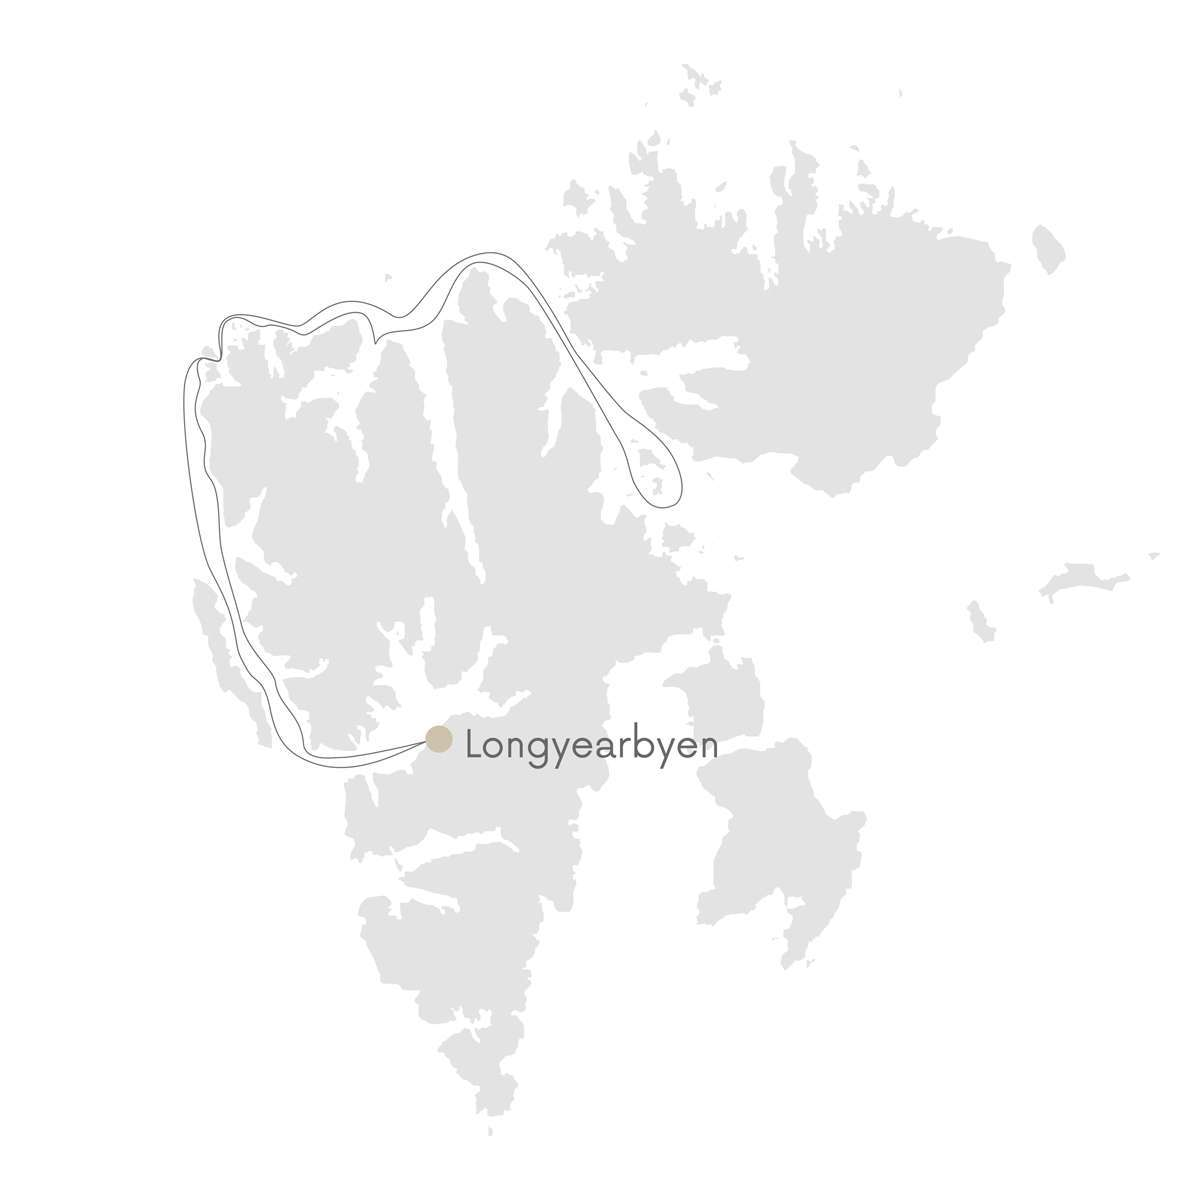 svalbard expedition cruise route map